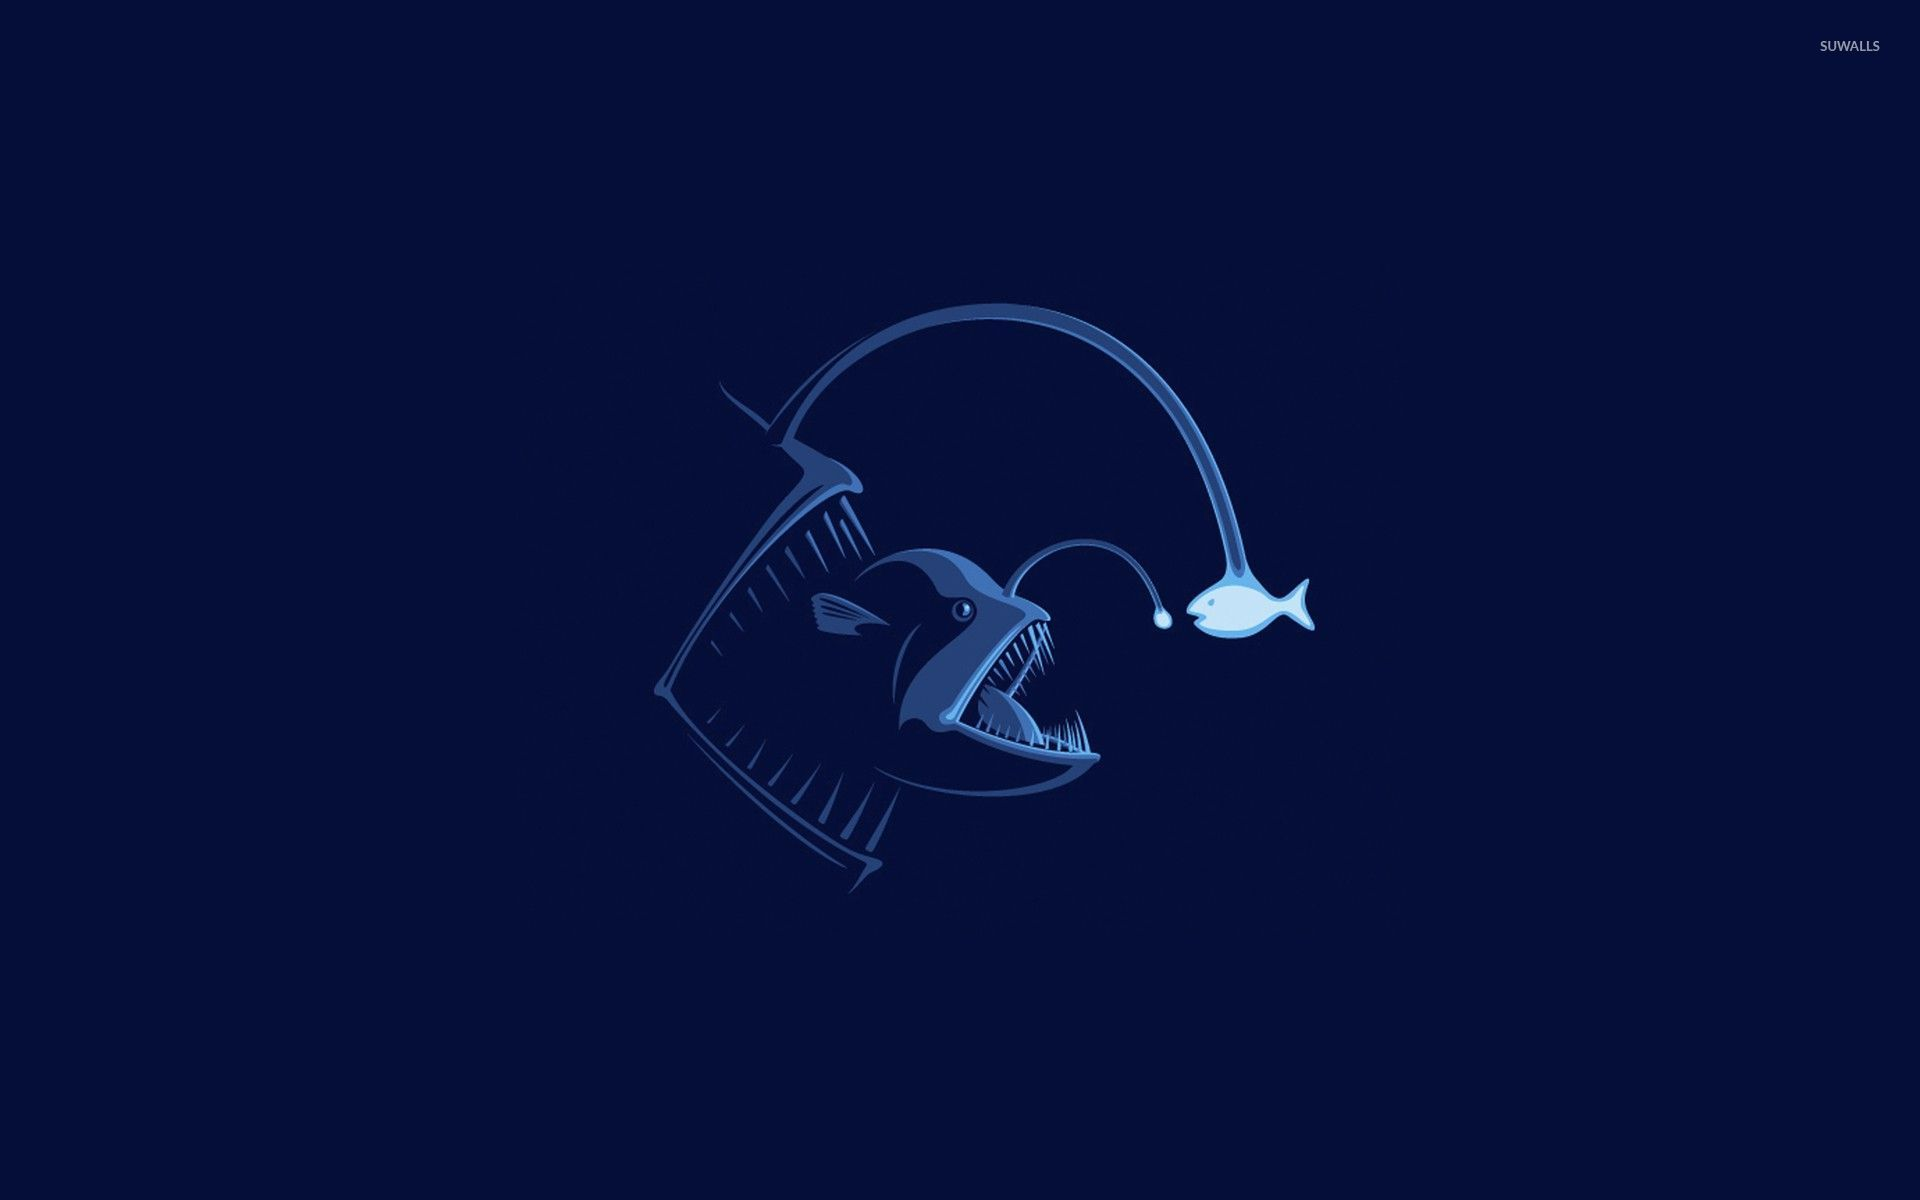 Angler Fish Wallpaper